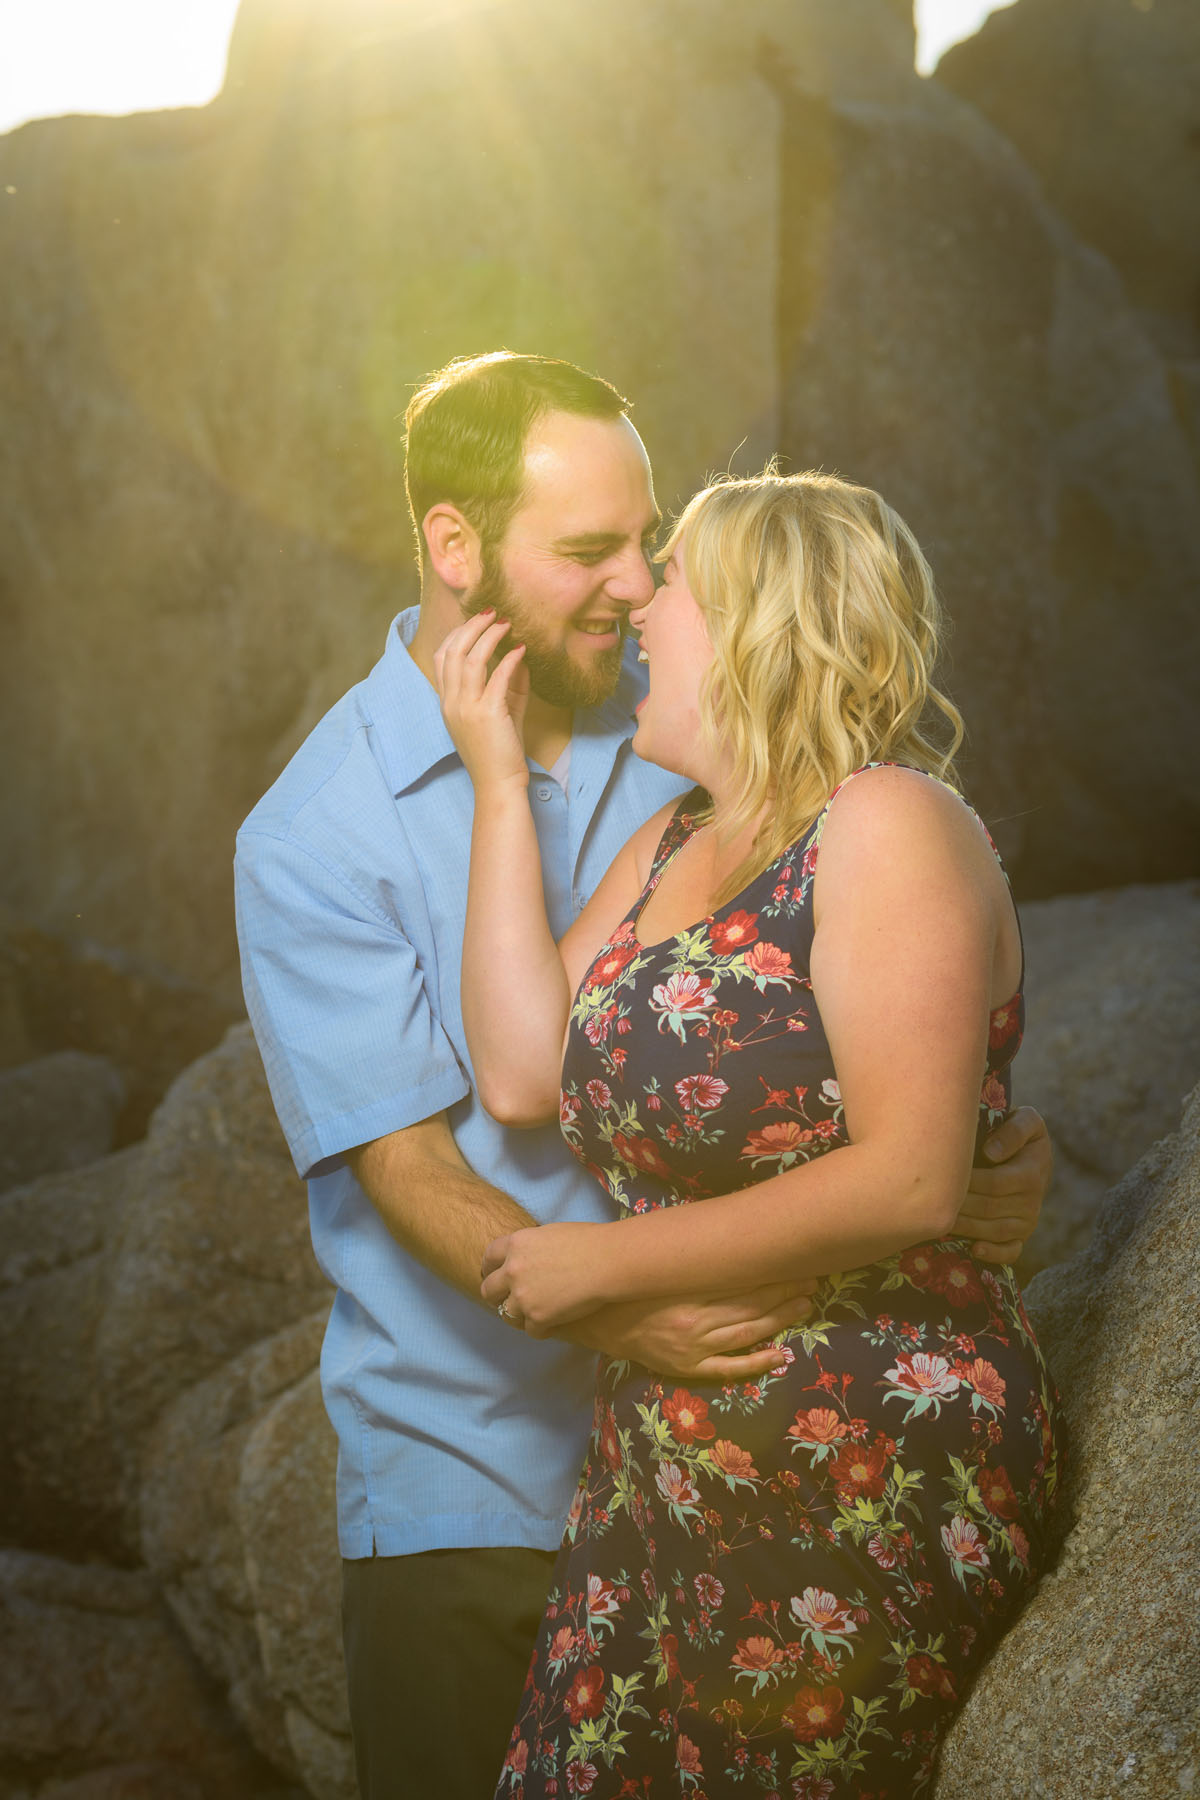 couple intimate on beach b&w - Stewart's Cove - Carmel Engagement Photography - photos by Bay Area wedding photographer Chris Schmauch